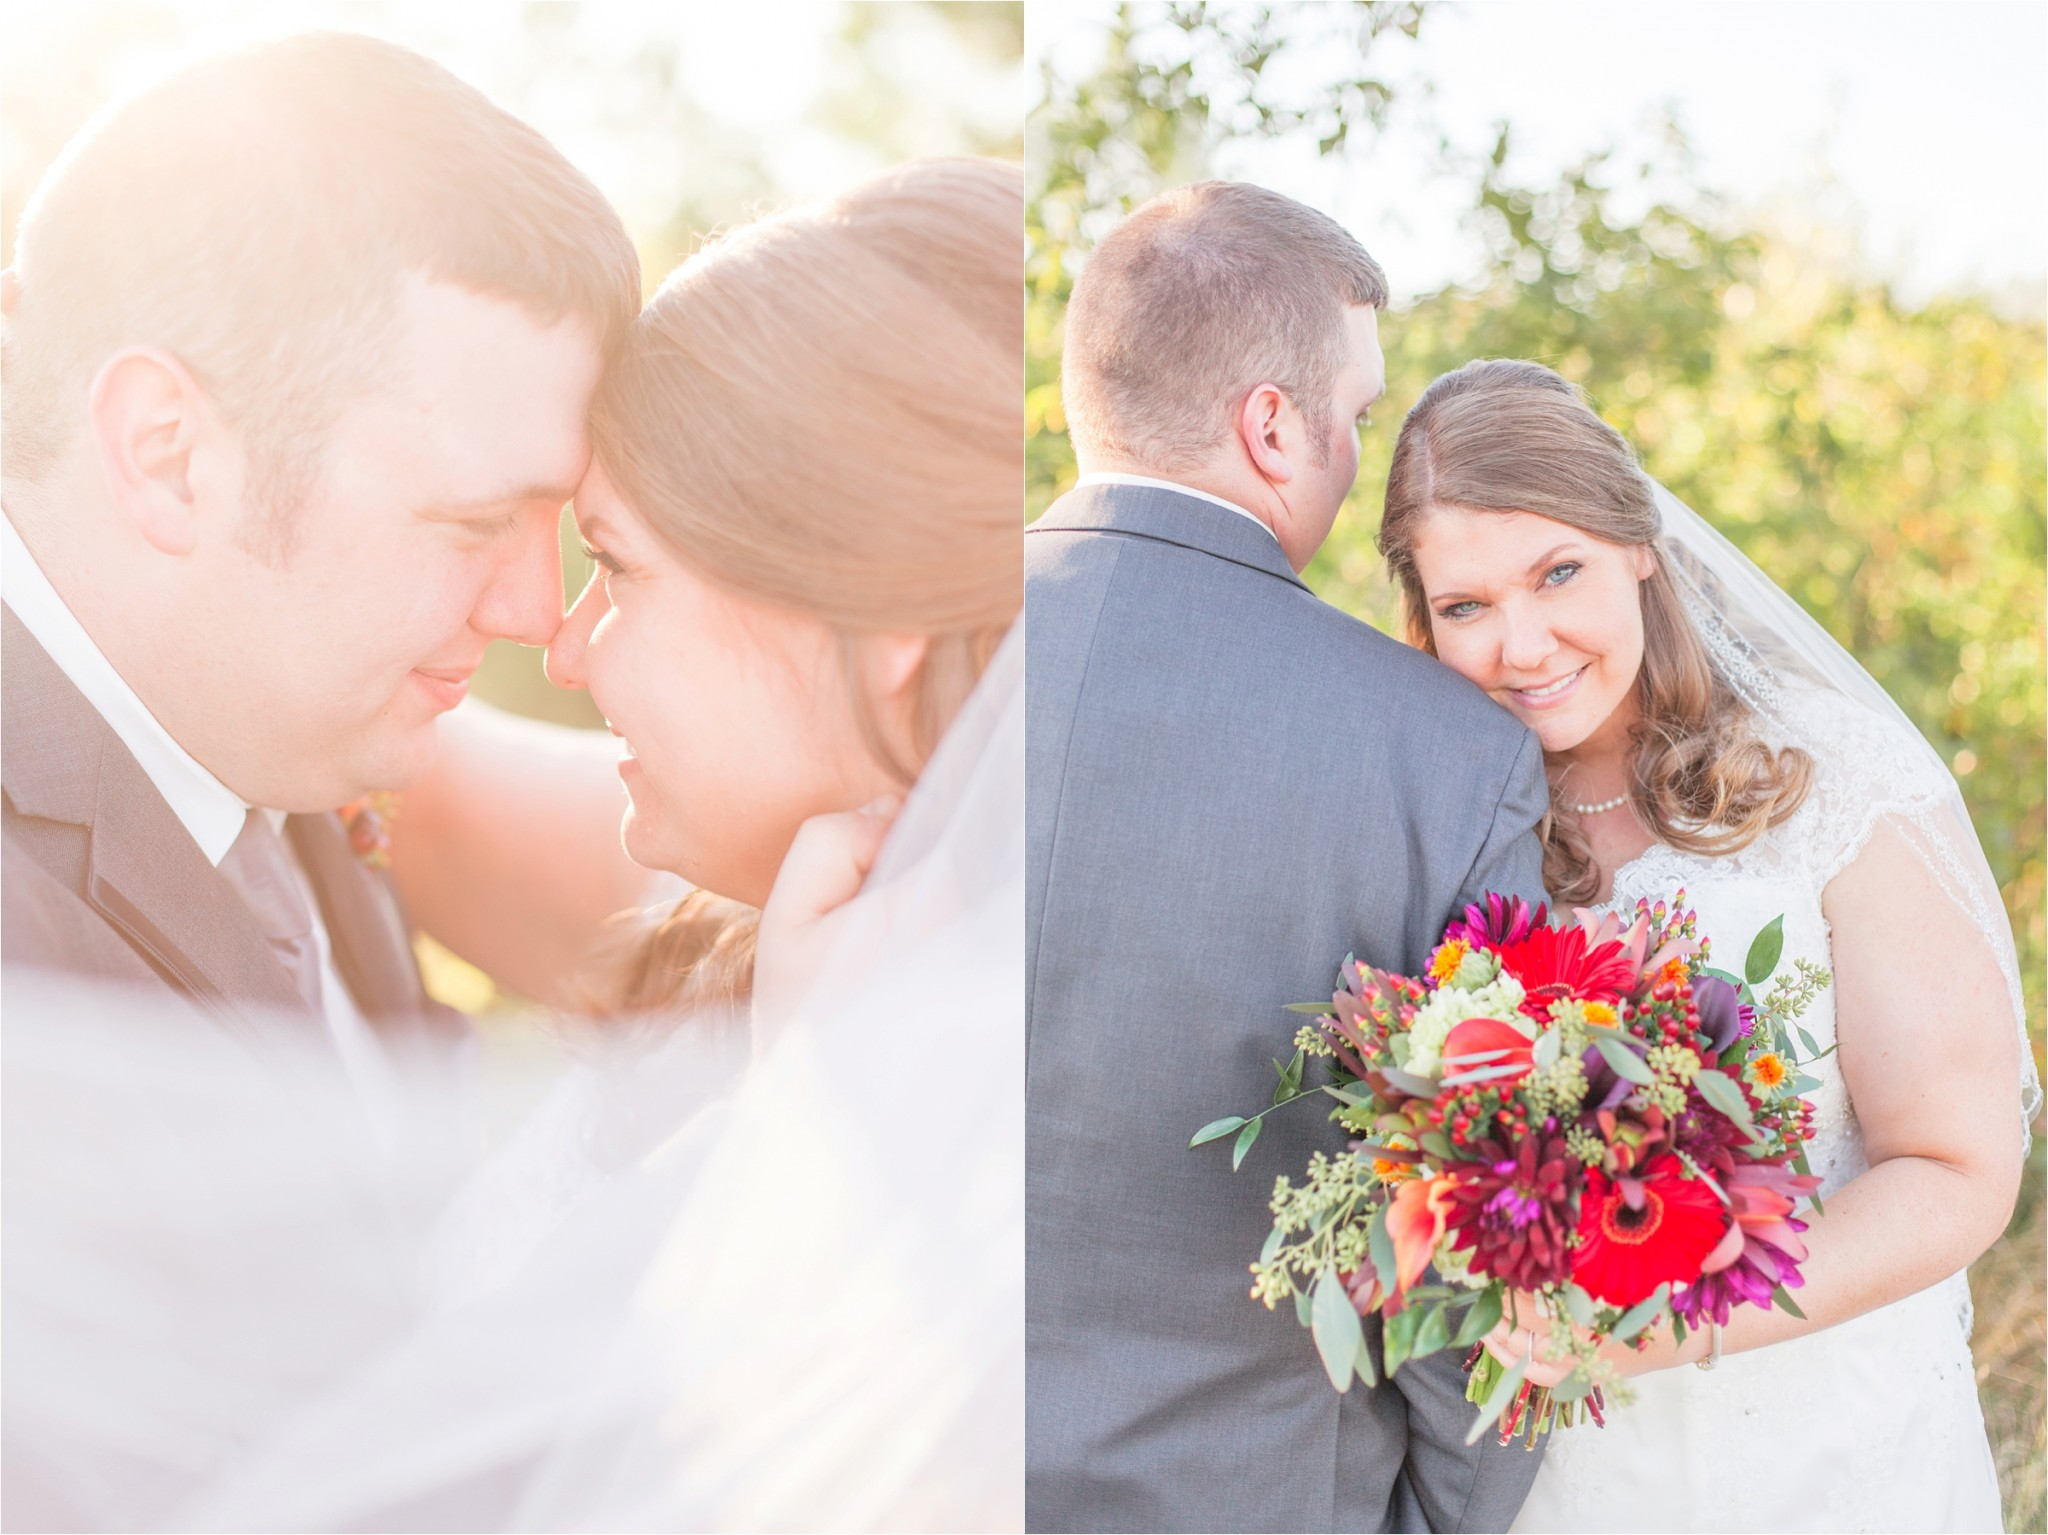 sharpewedding_0096